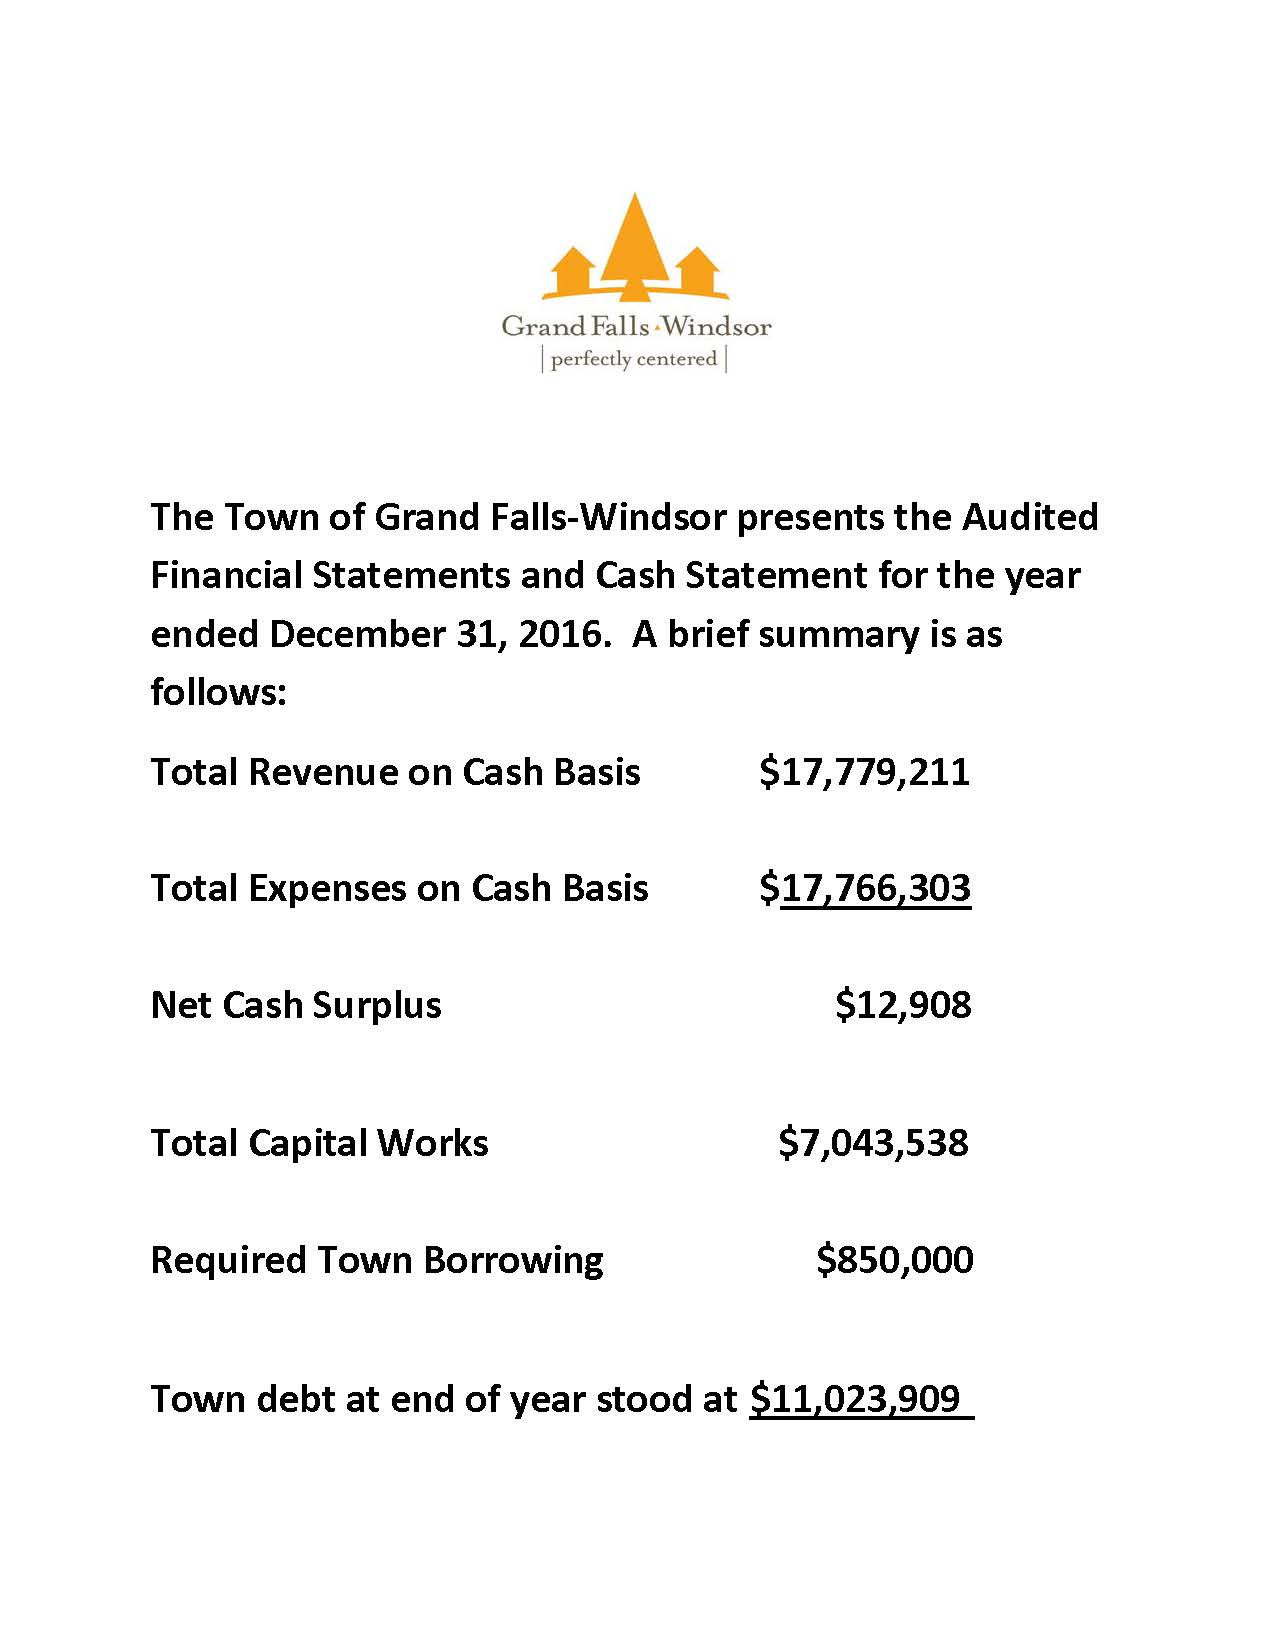 Audited Financial Statements and Cash Statement Dec 31 2016